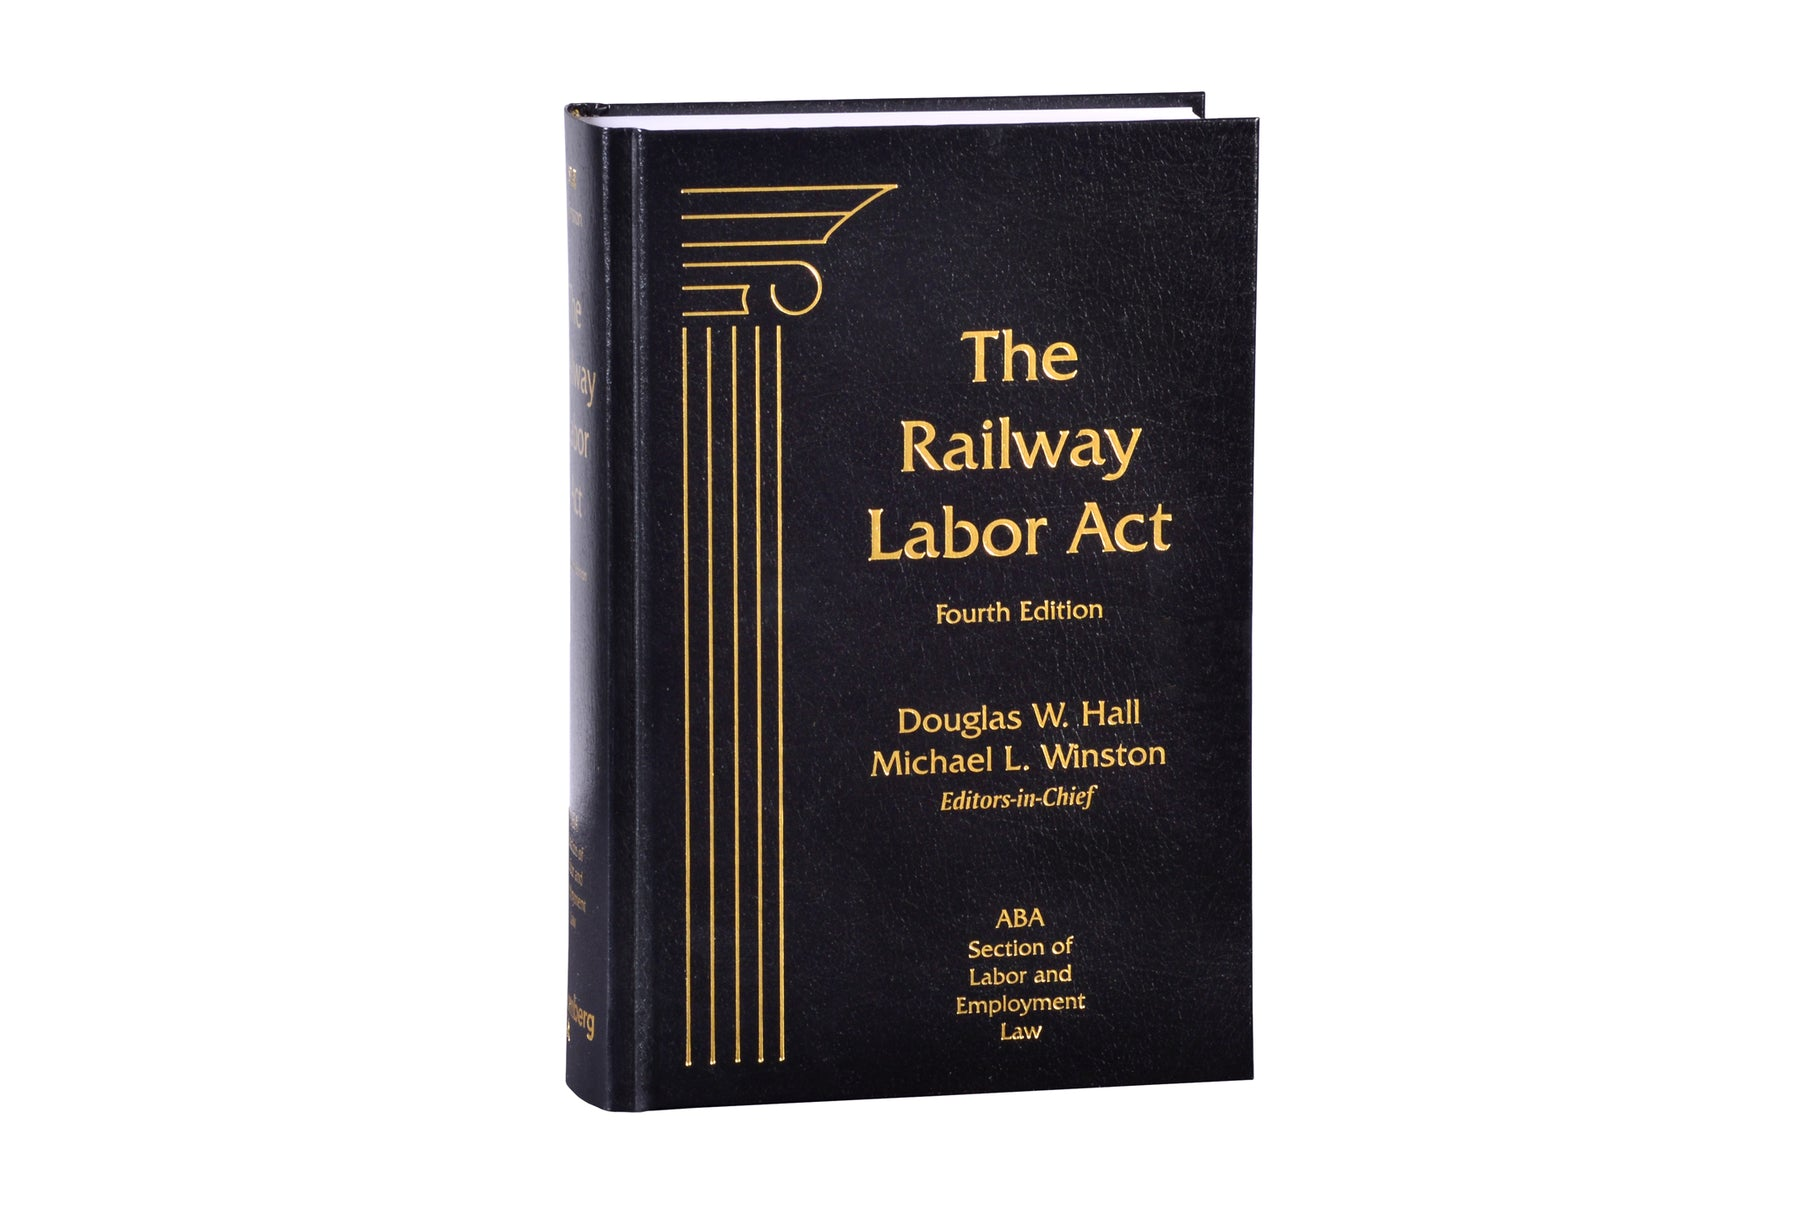 Railway Labor Act, The, Fourth Edition